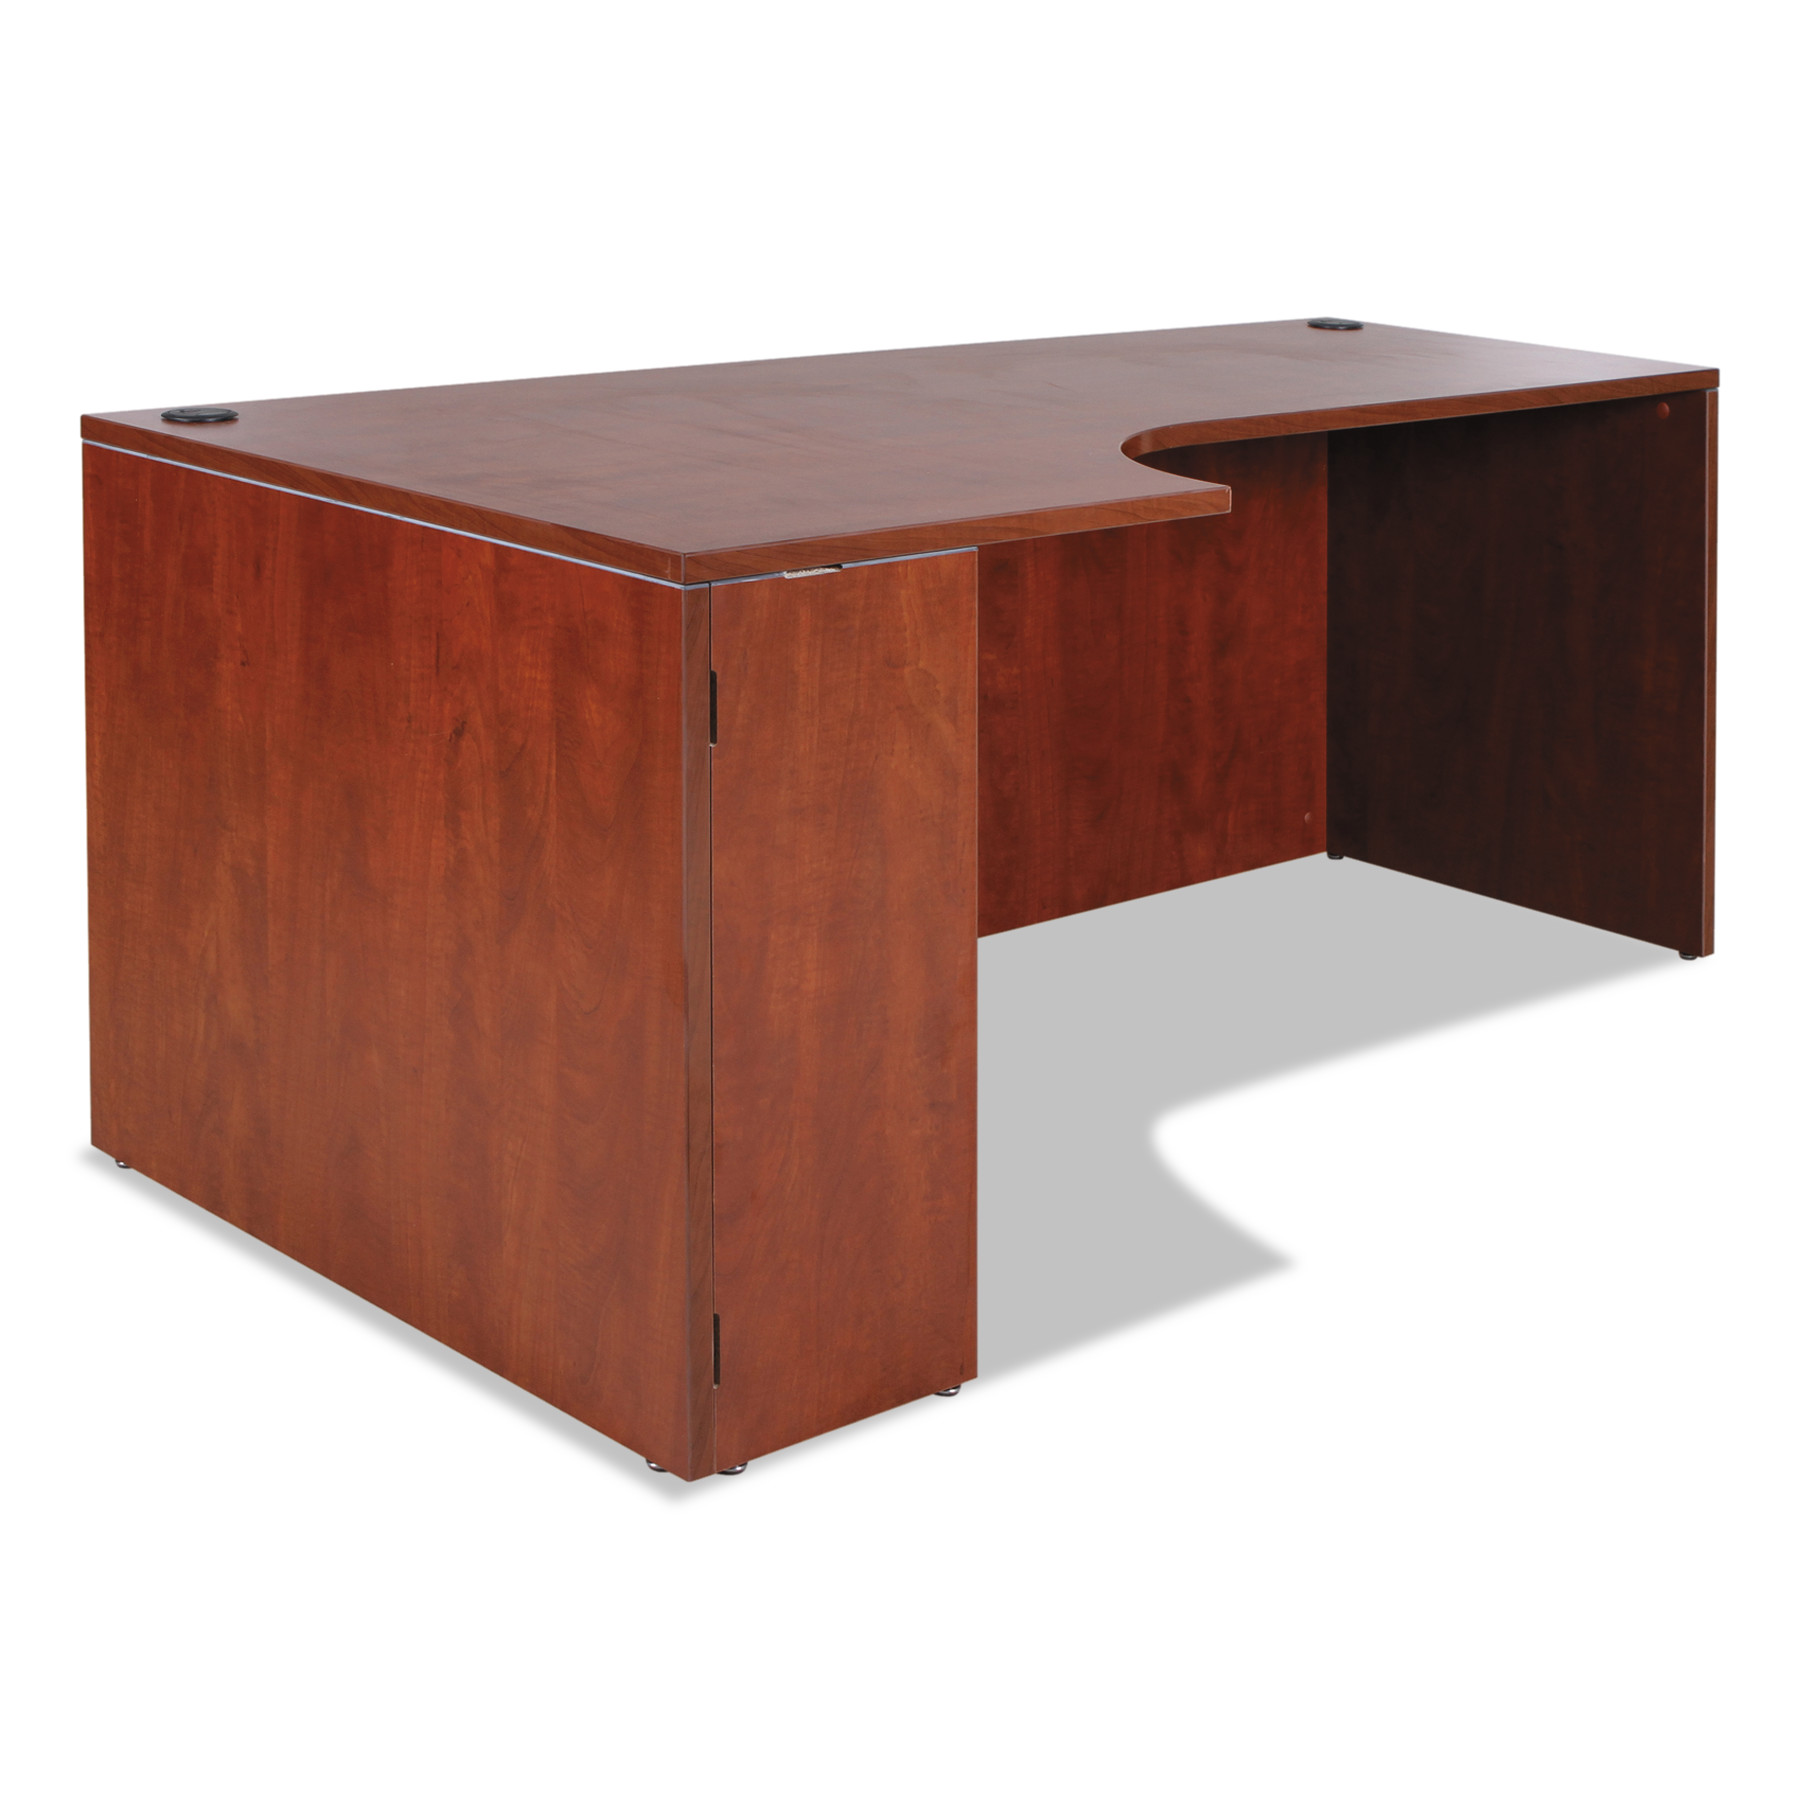 Alera Alera Valencia Left Corner Credenza Shell, 72w x 36d x 29 1 2h, Medium Cherry by ALERA